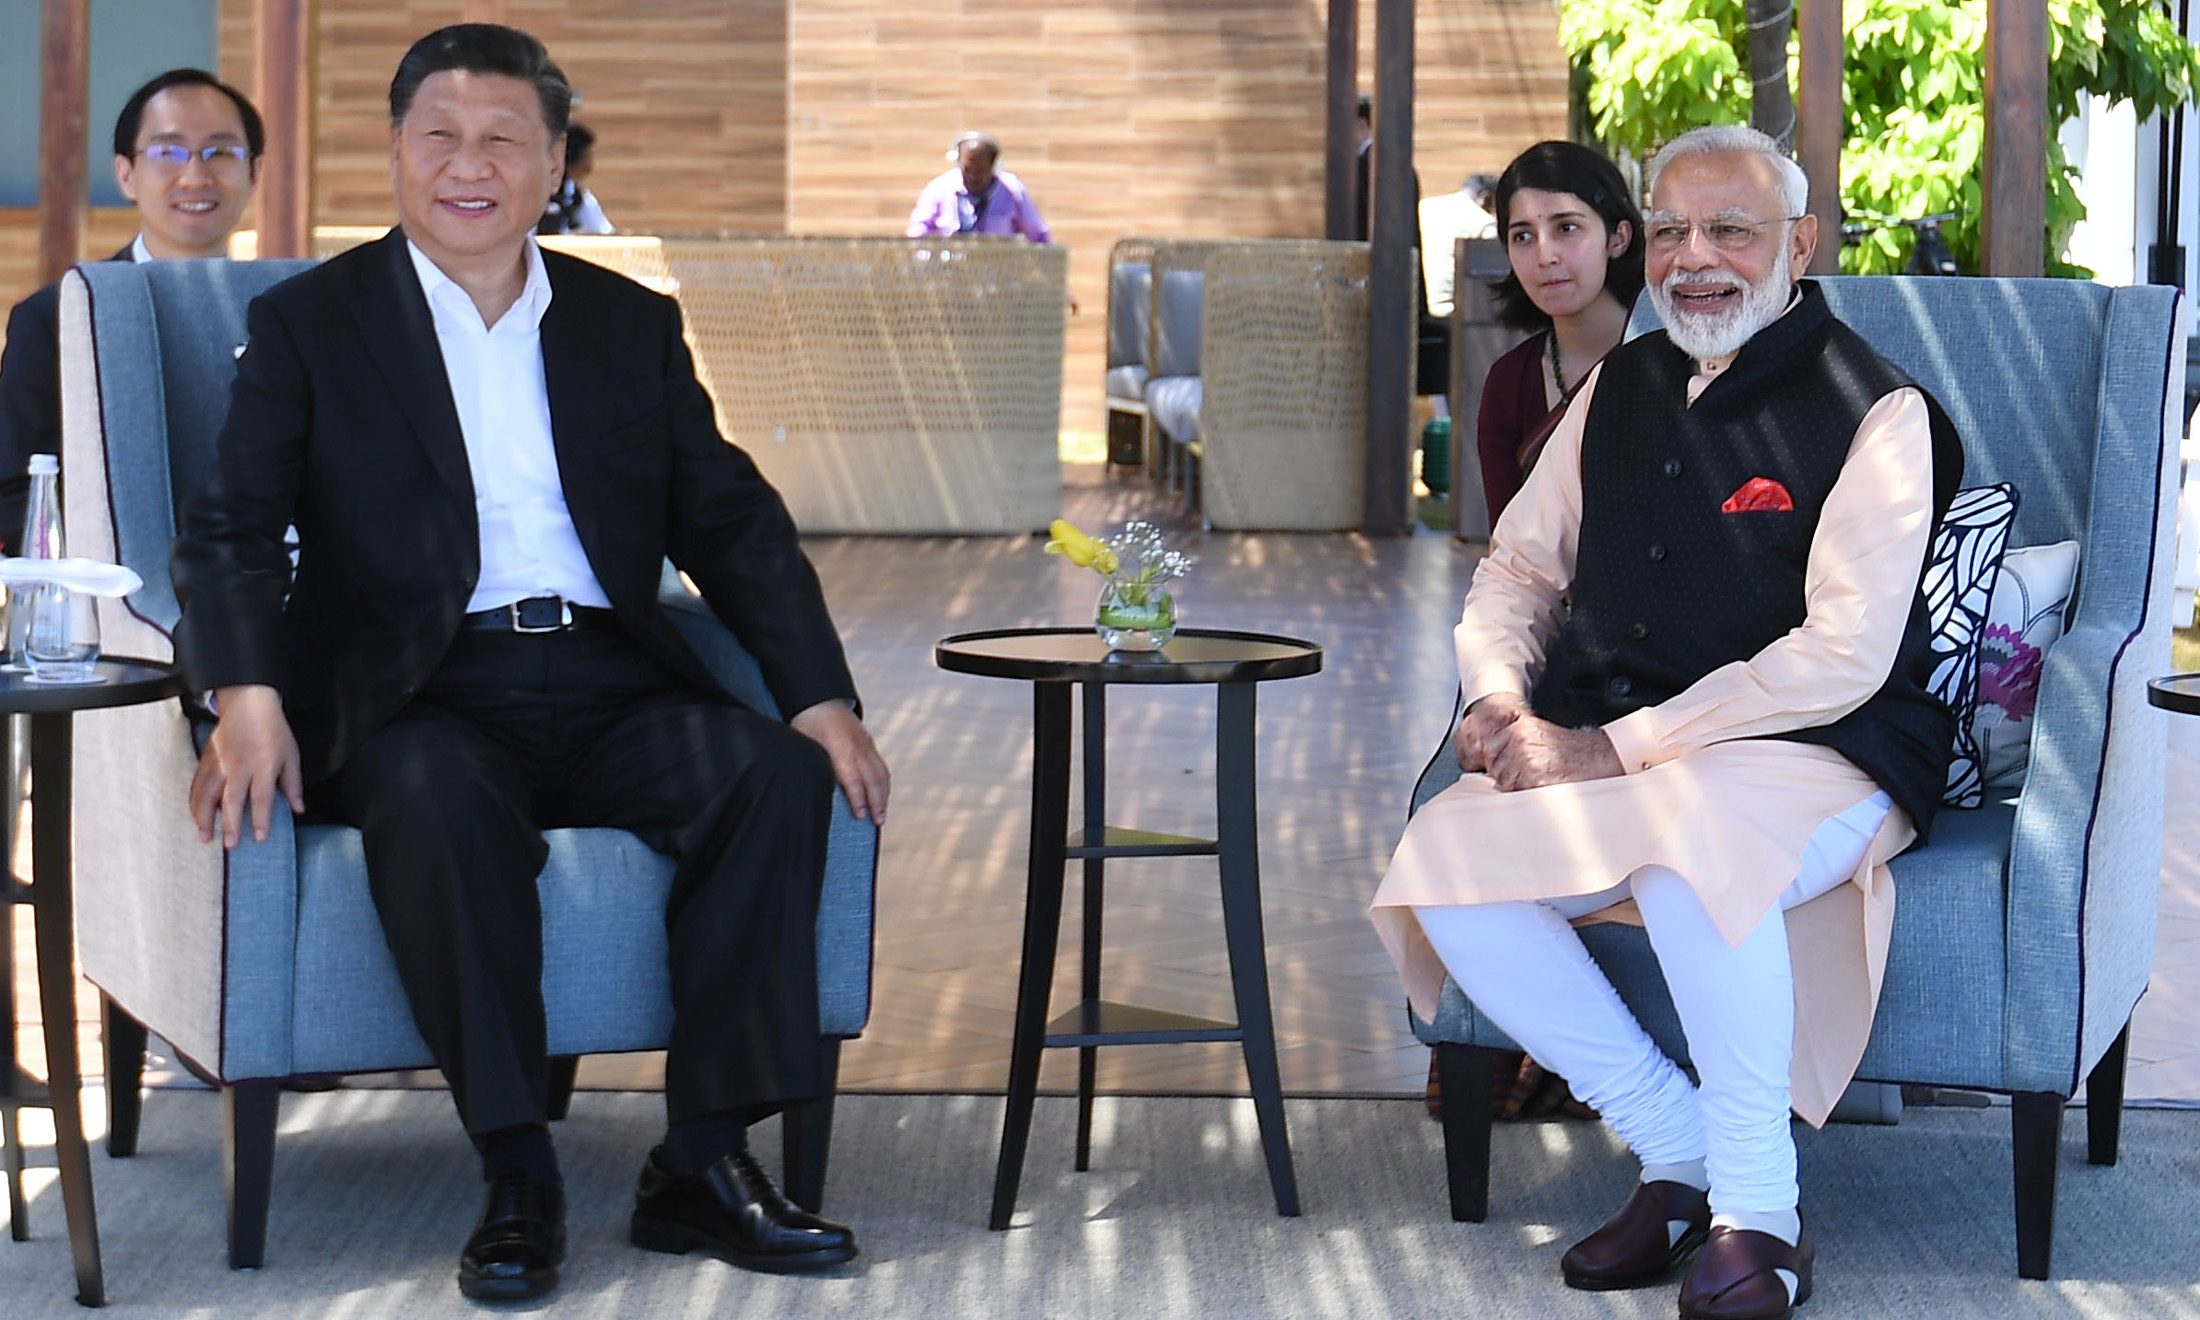 'Chennai Connect' begins a New Era of Cooperation in India-China relations says PM